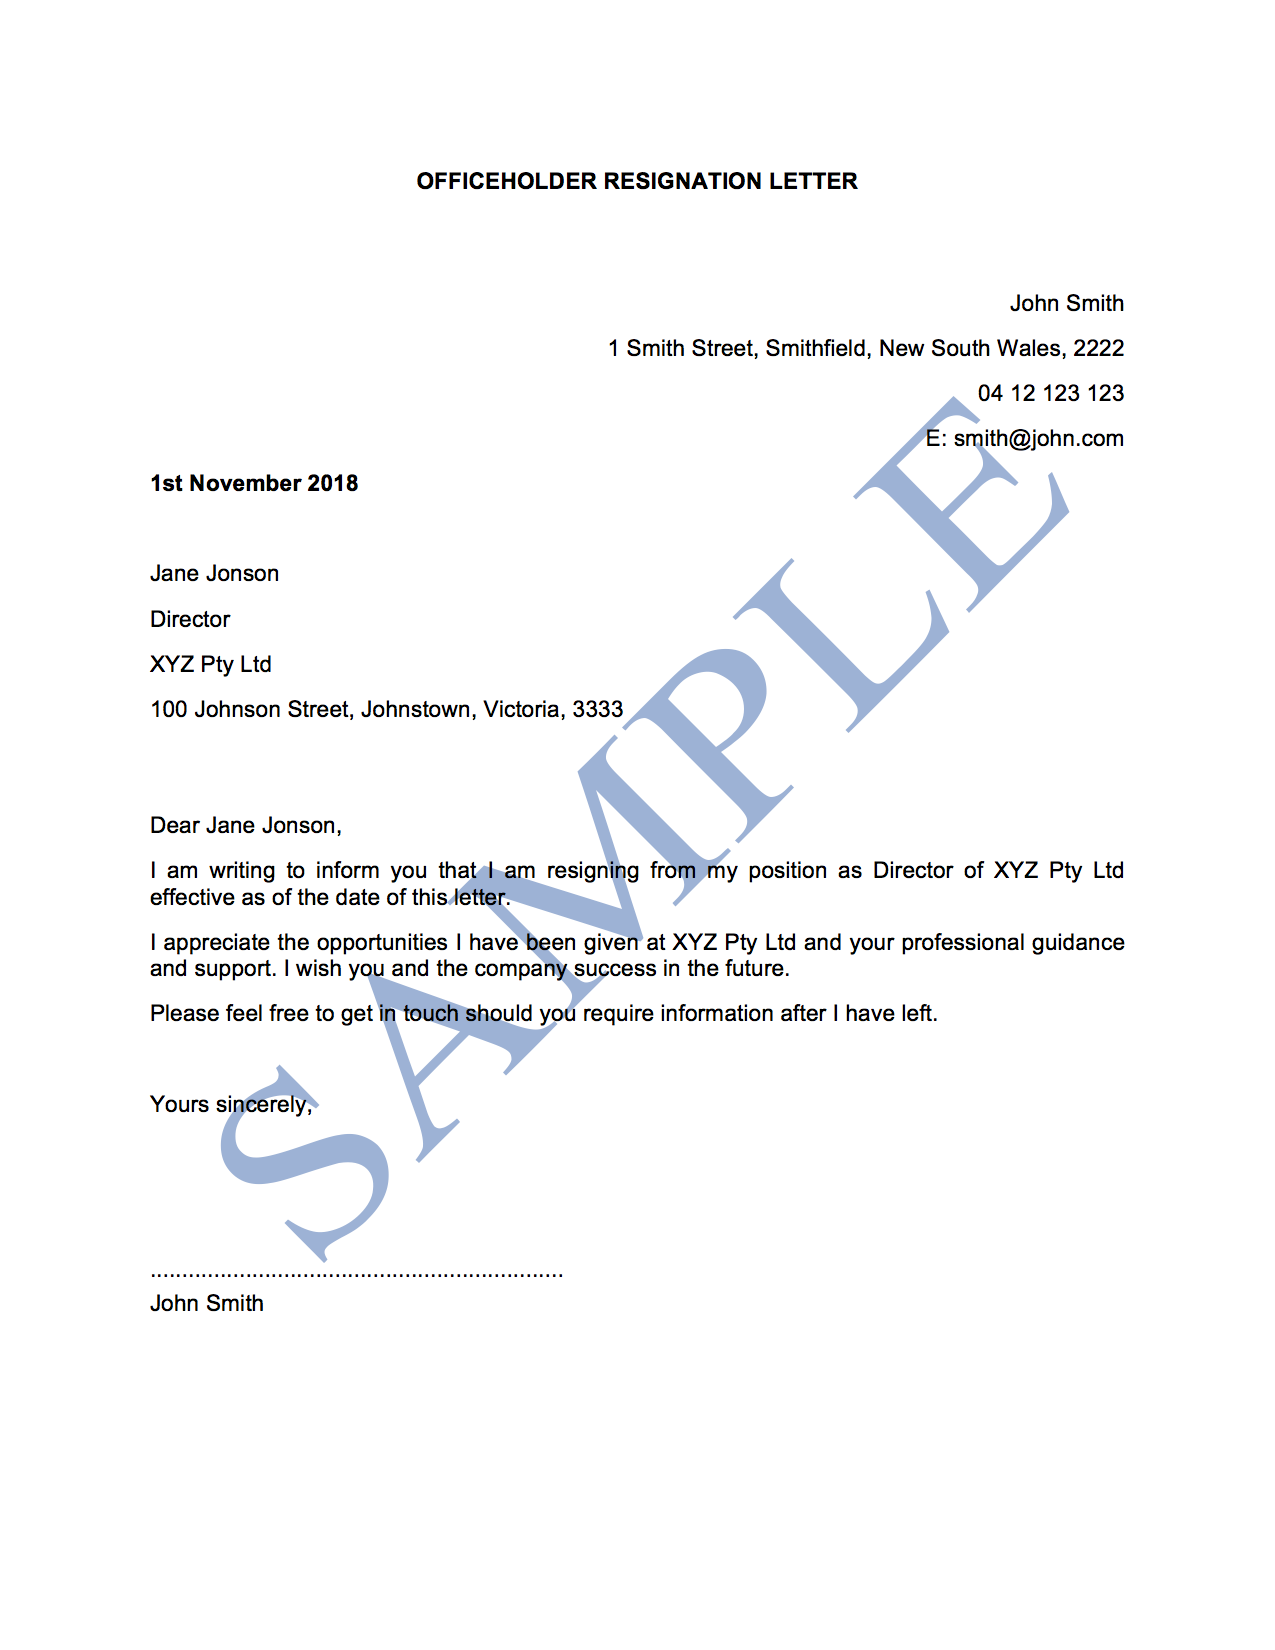 Officeholder Resignation Letter